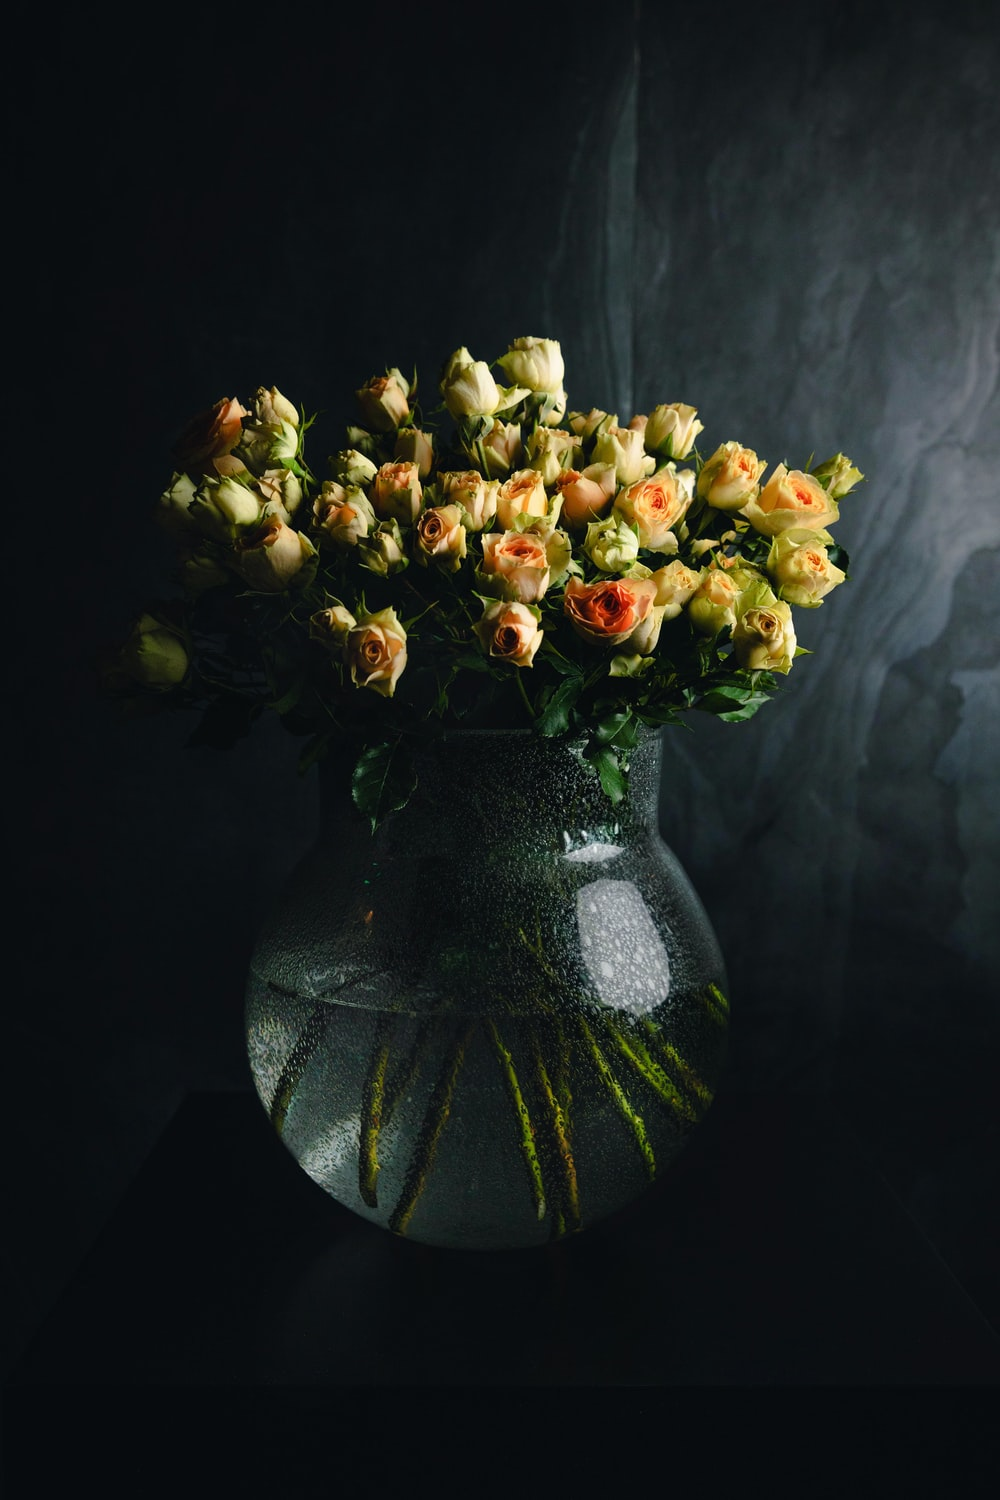 yellow flowers with vase